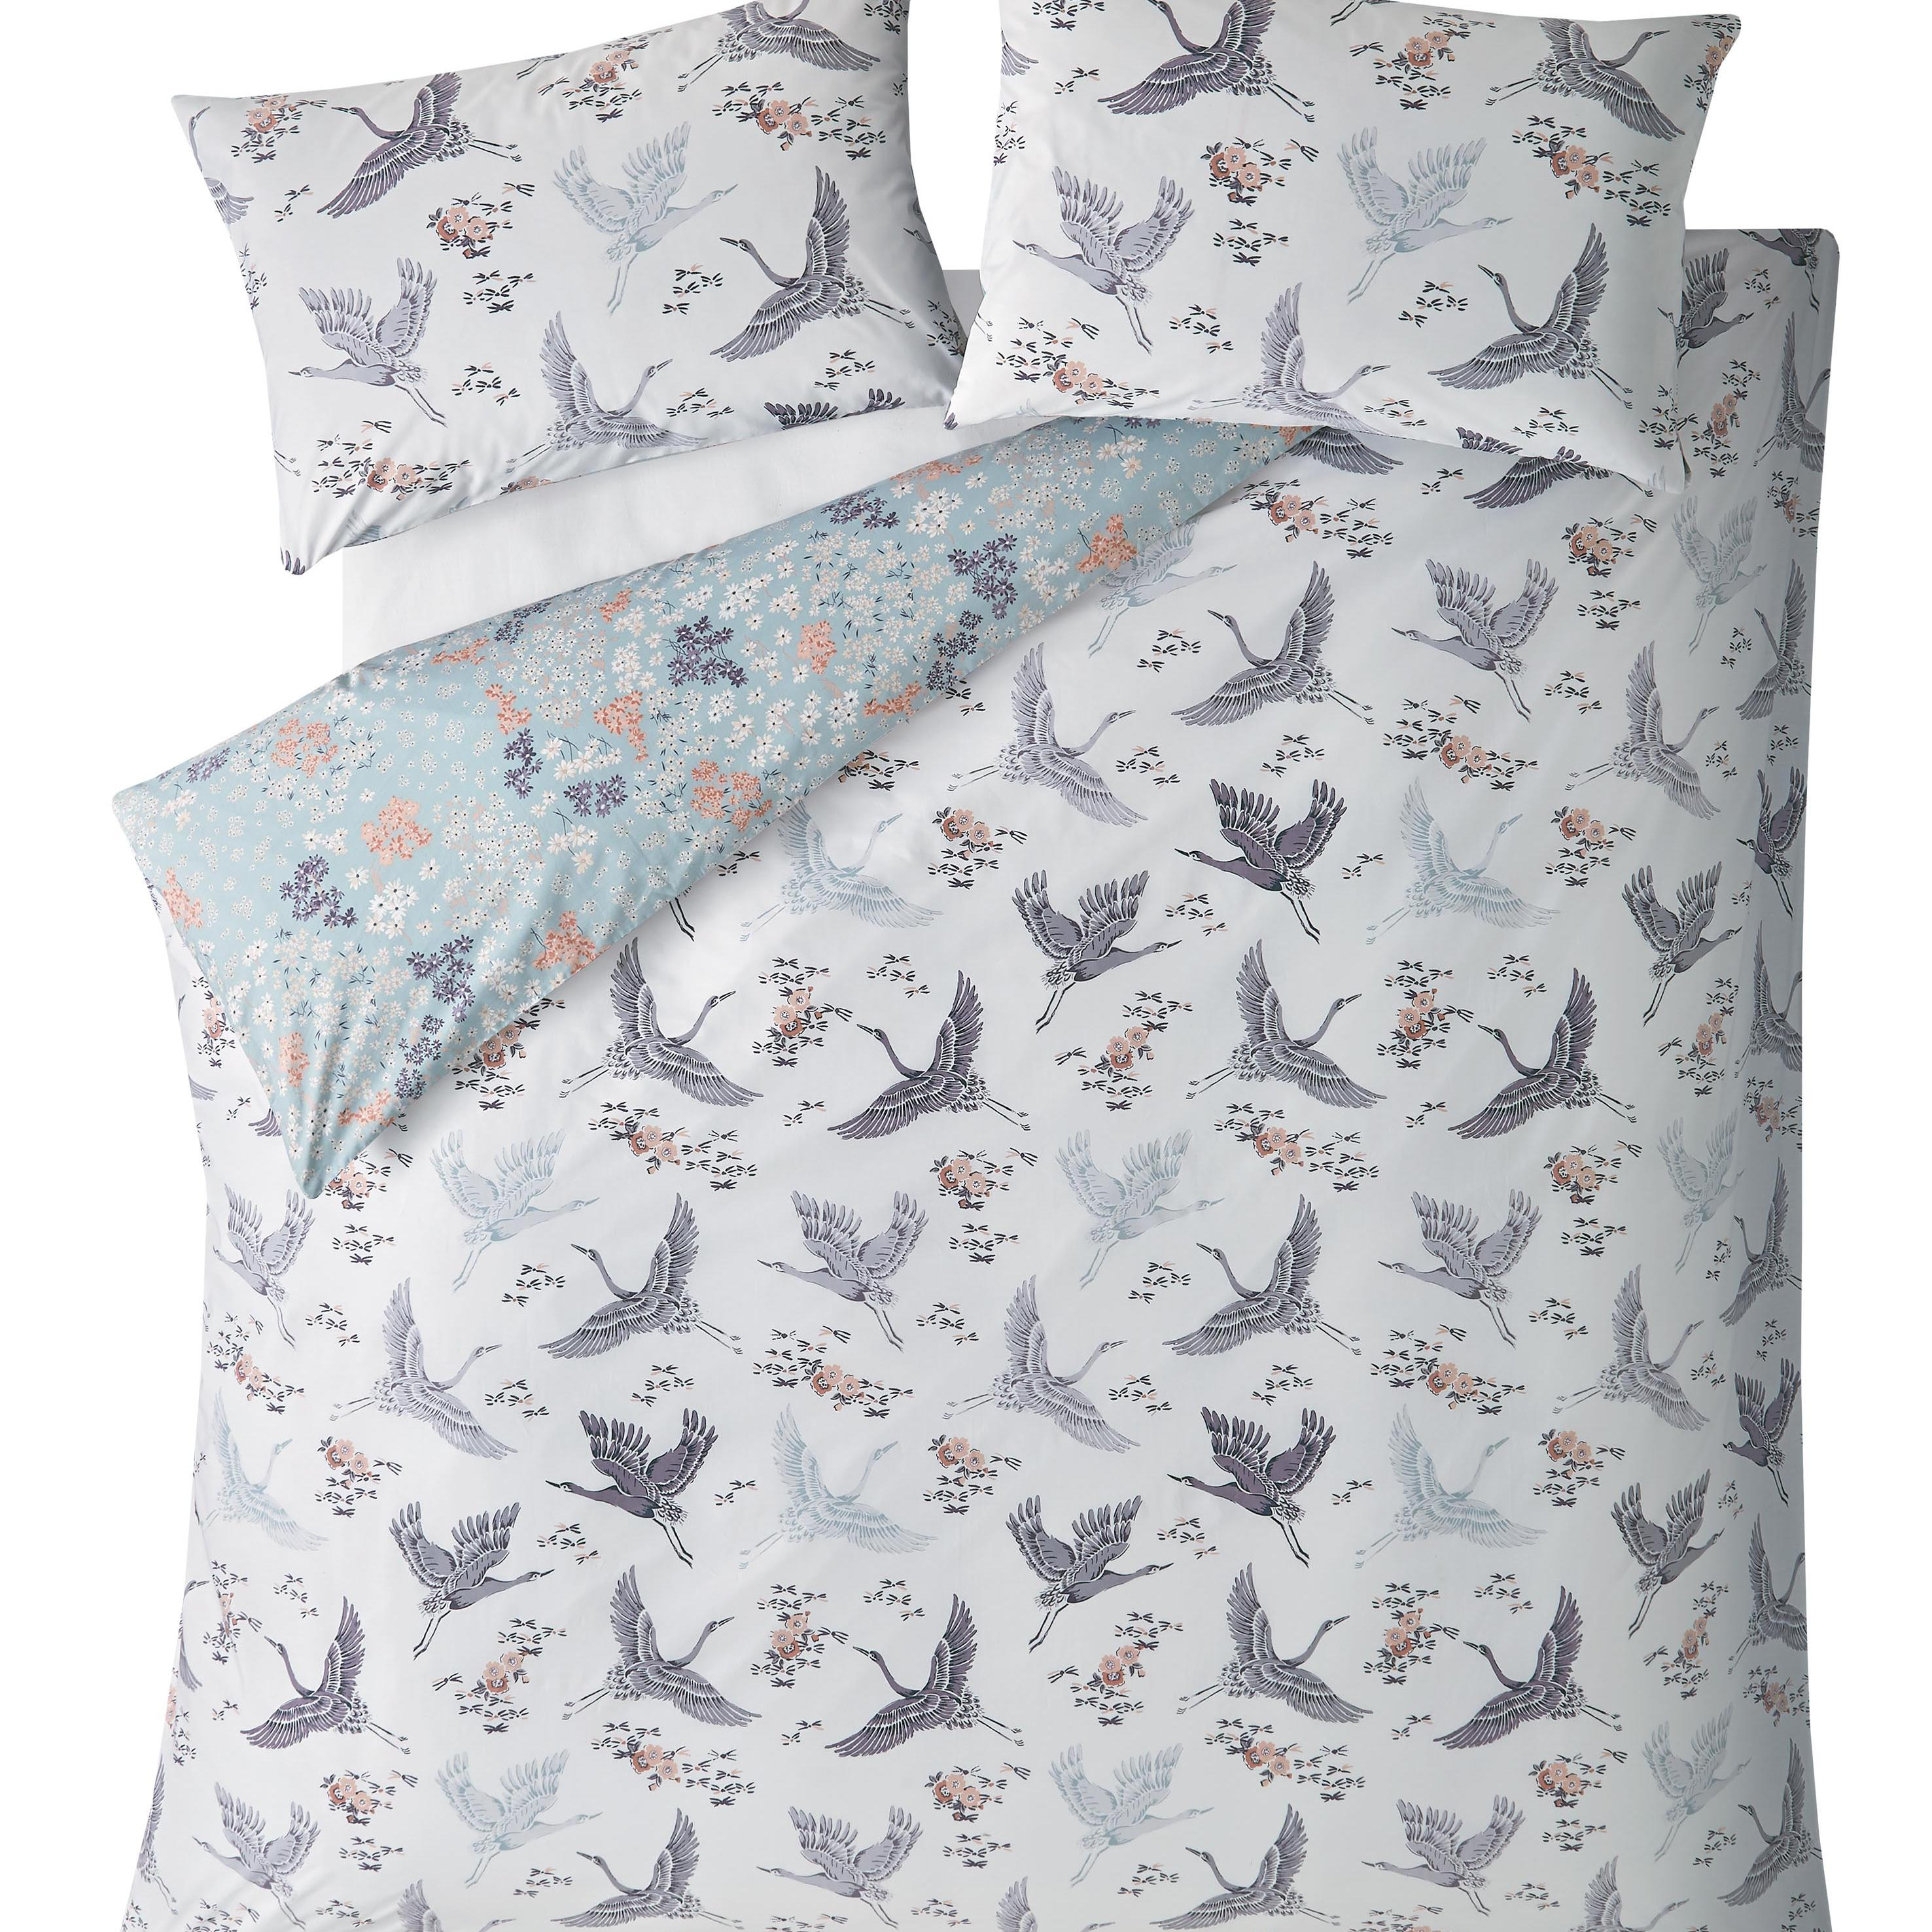 FLORAL FLIGHT IRIS DOUBLE DUVET COVER